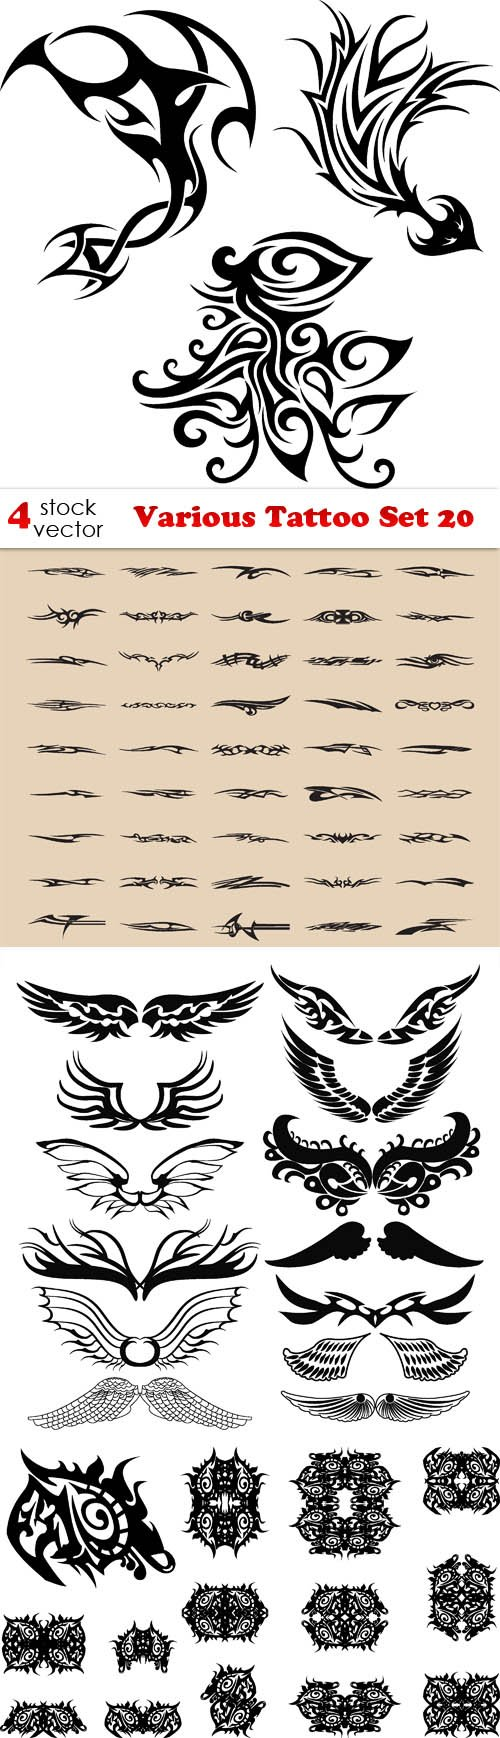 Vectors - Various Tattoo Set 20